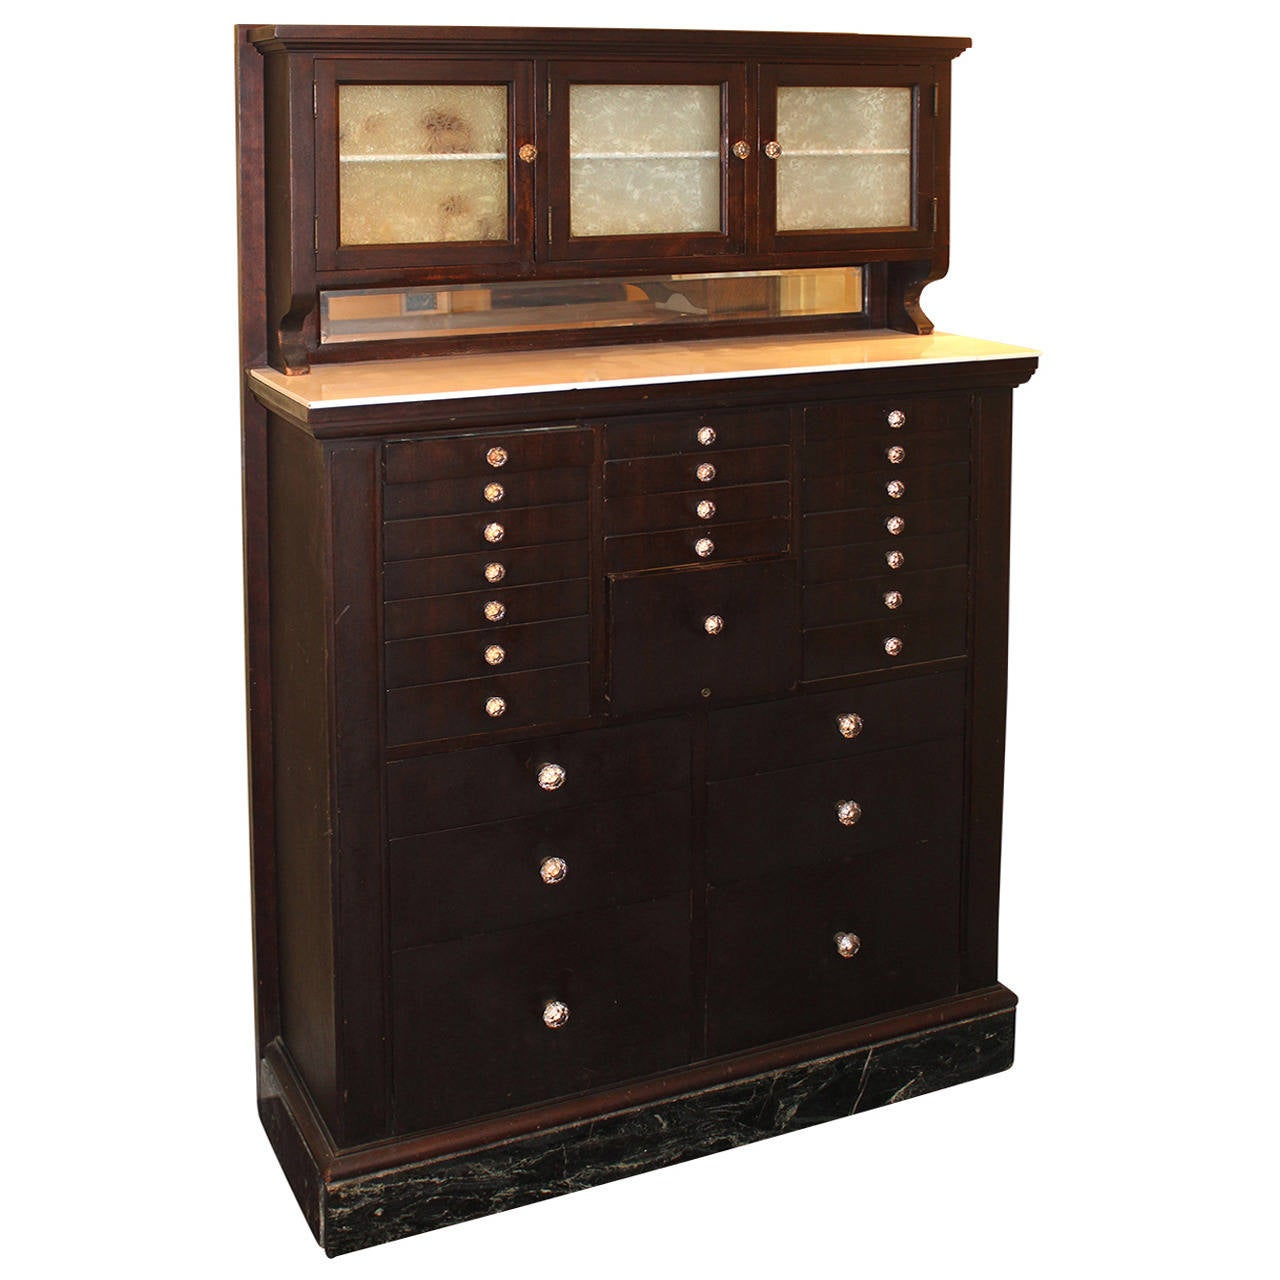 American cabinet company mahogany dental cabinet circa for Furniture companies